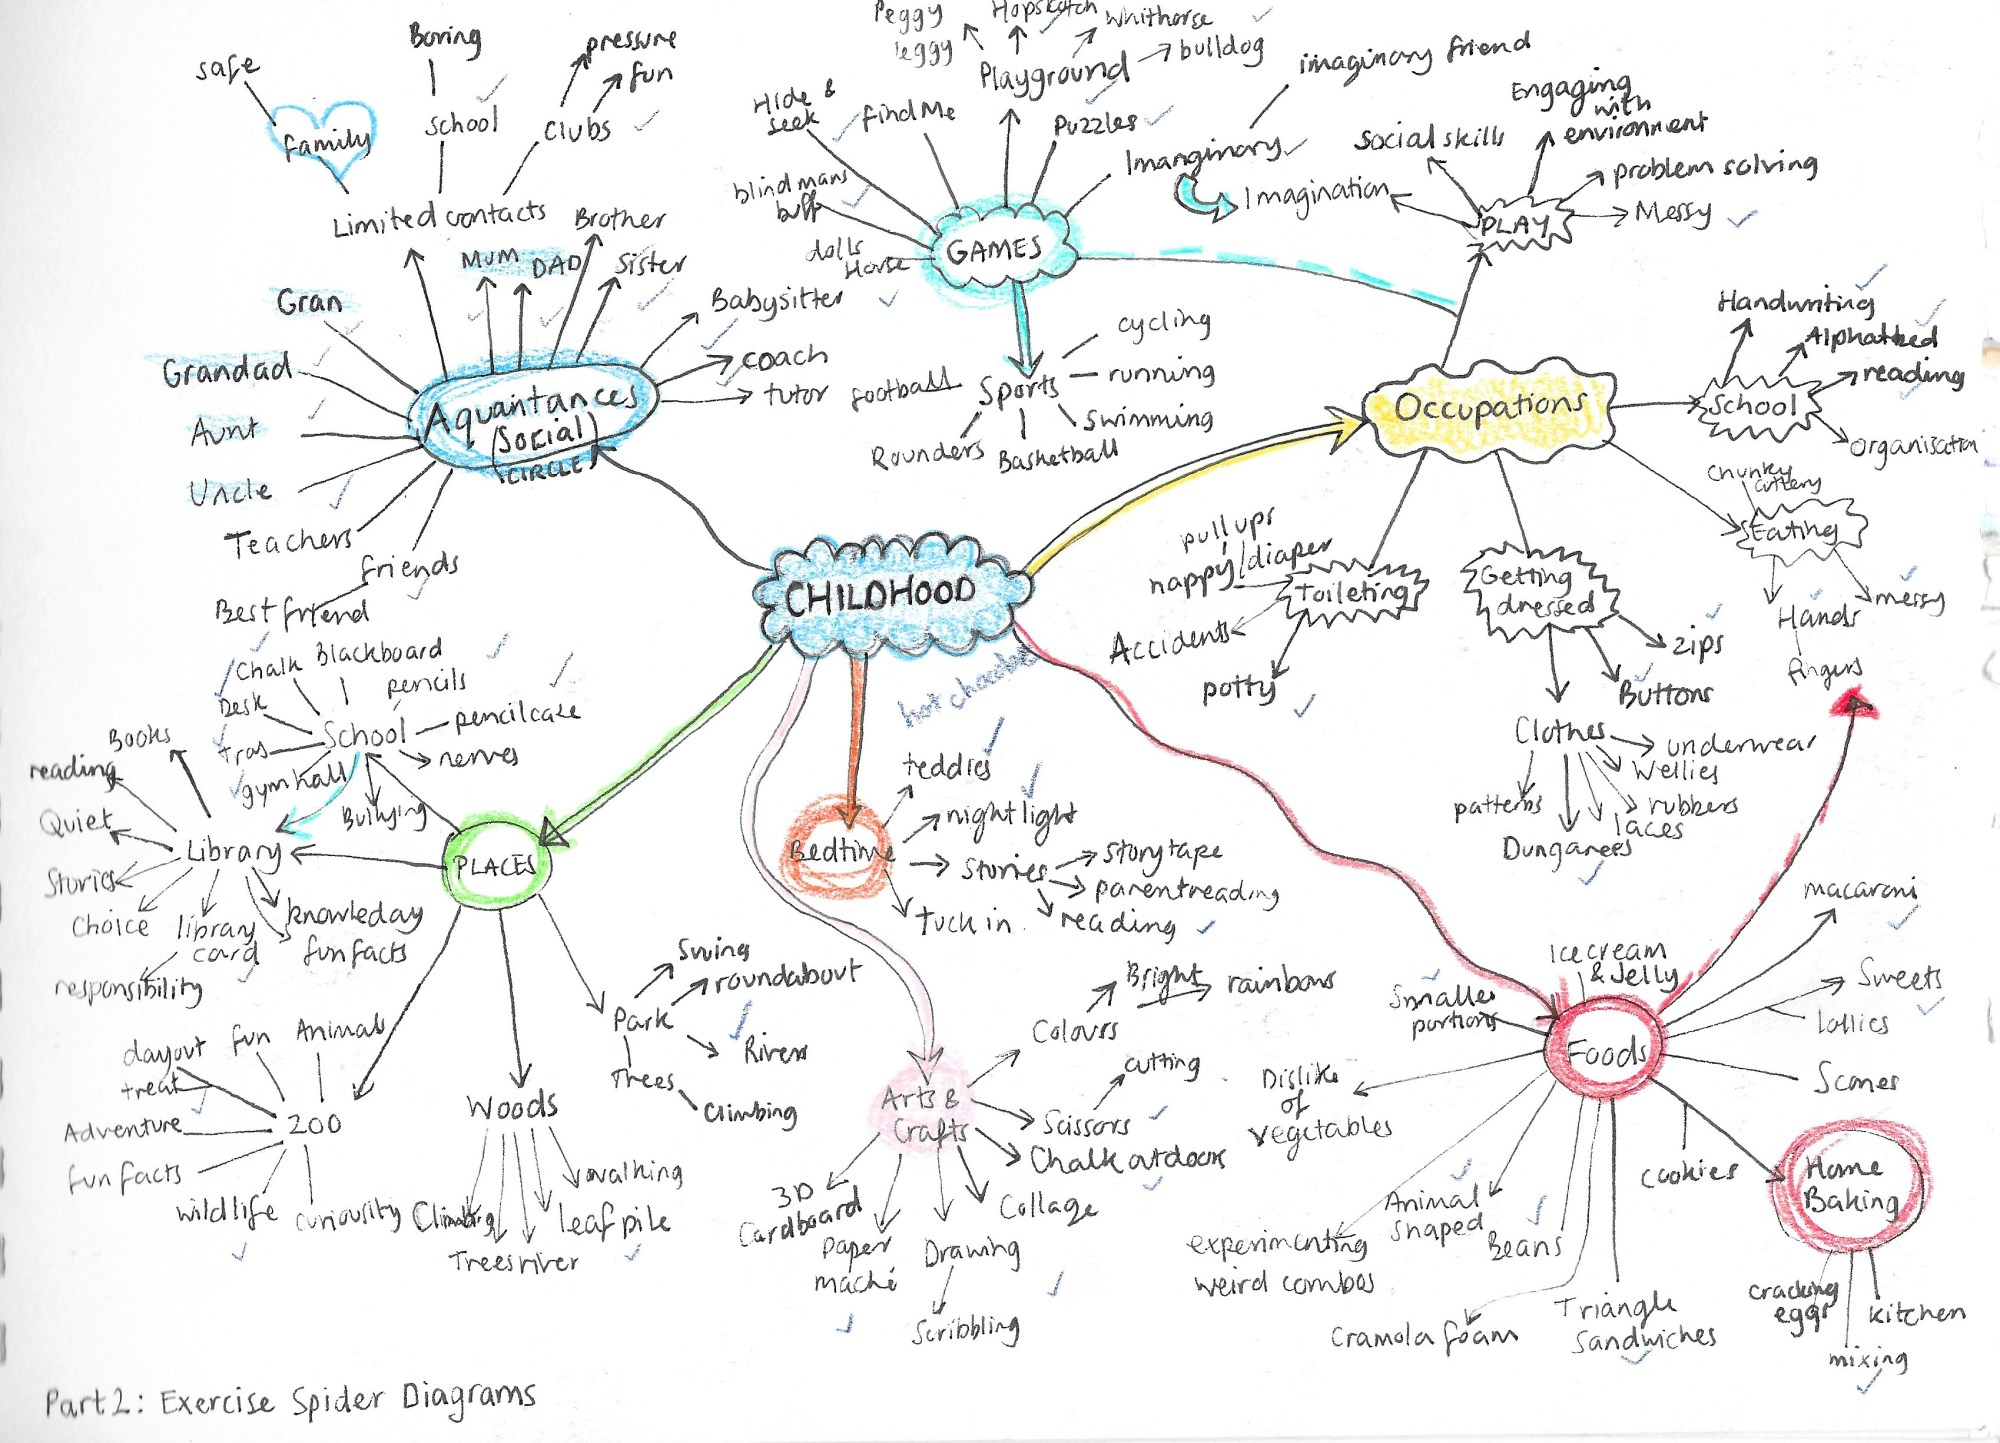 hight resolution of exercise spider diagrams u2013 nicola walkerwhen i completed the diagrams i asked my sister which